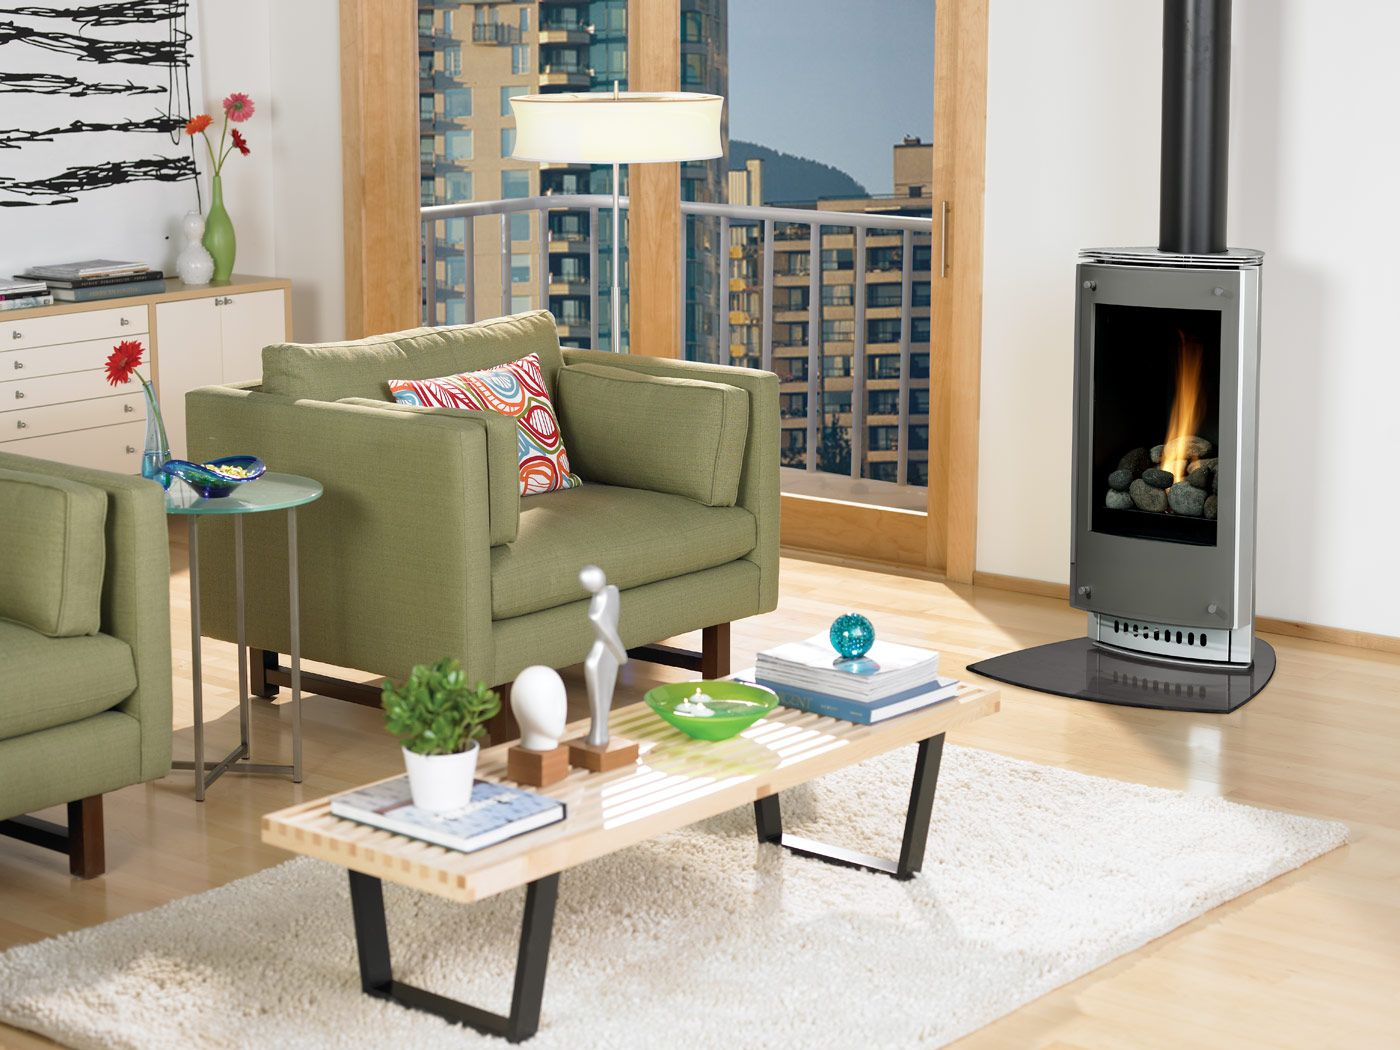 heat u0026 glo paloma gas stove free standing gas stoves can offer